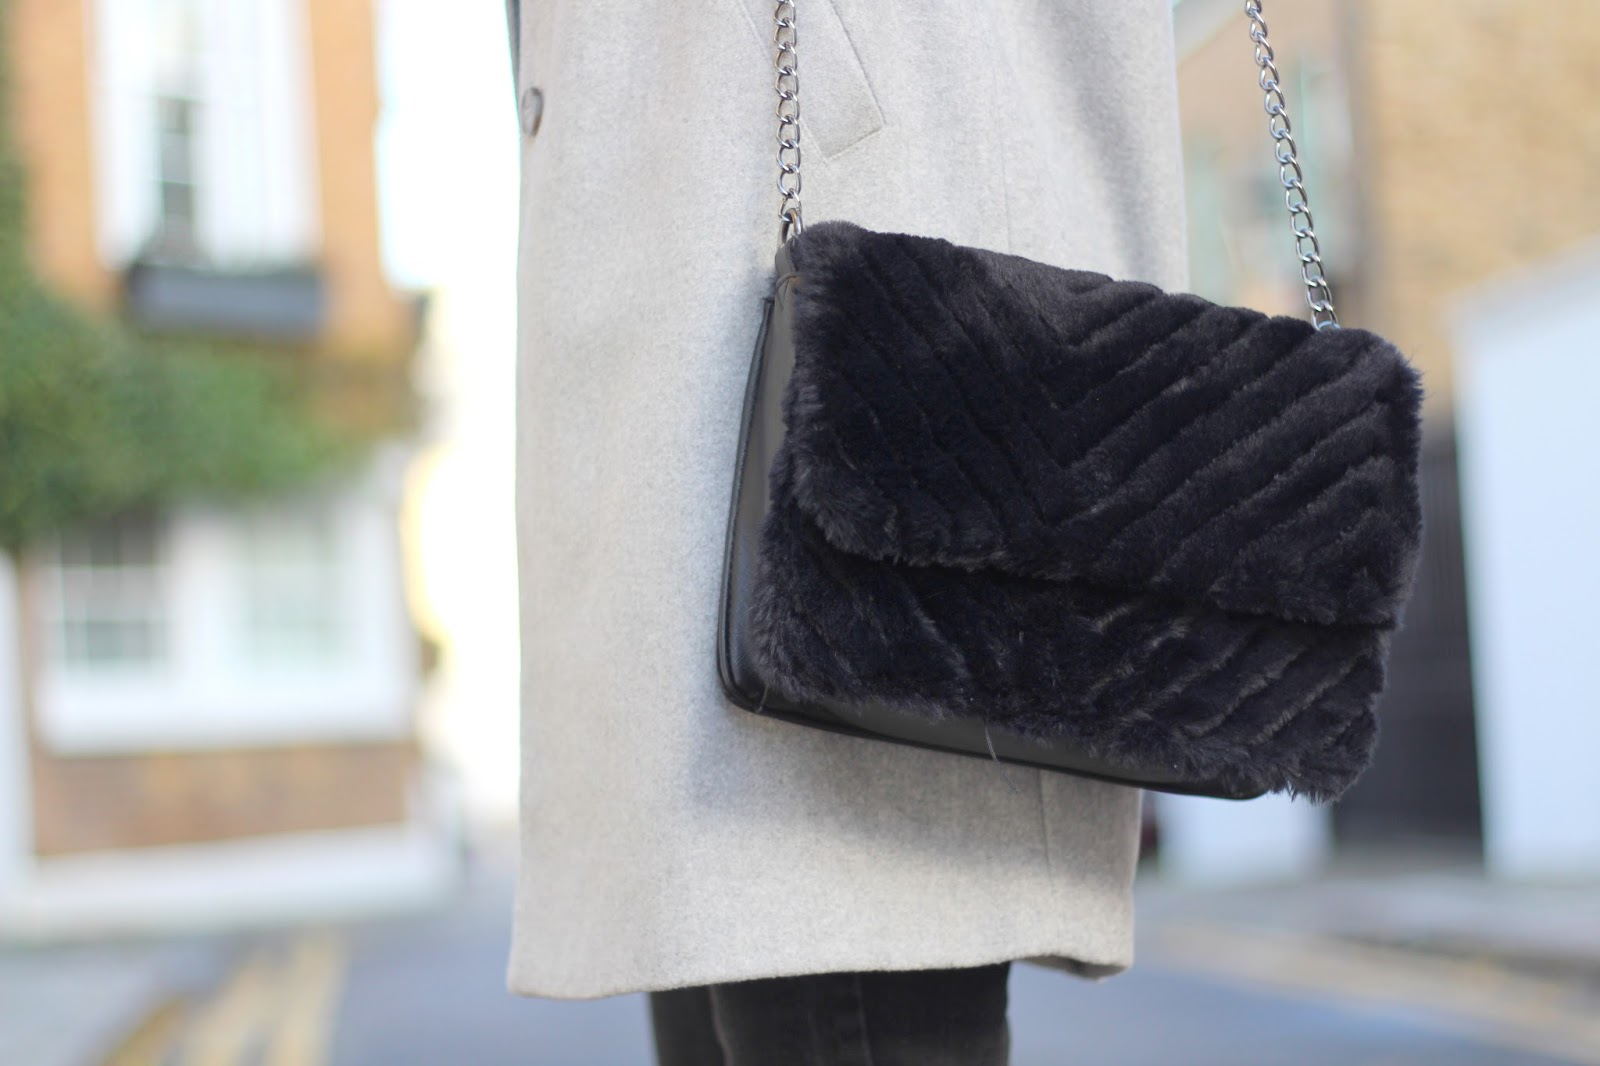 faux fur bag peexo primark